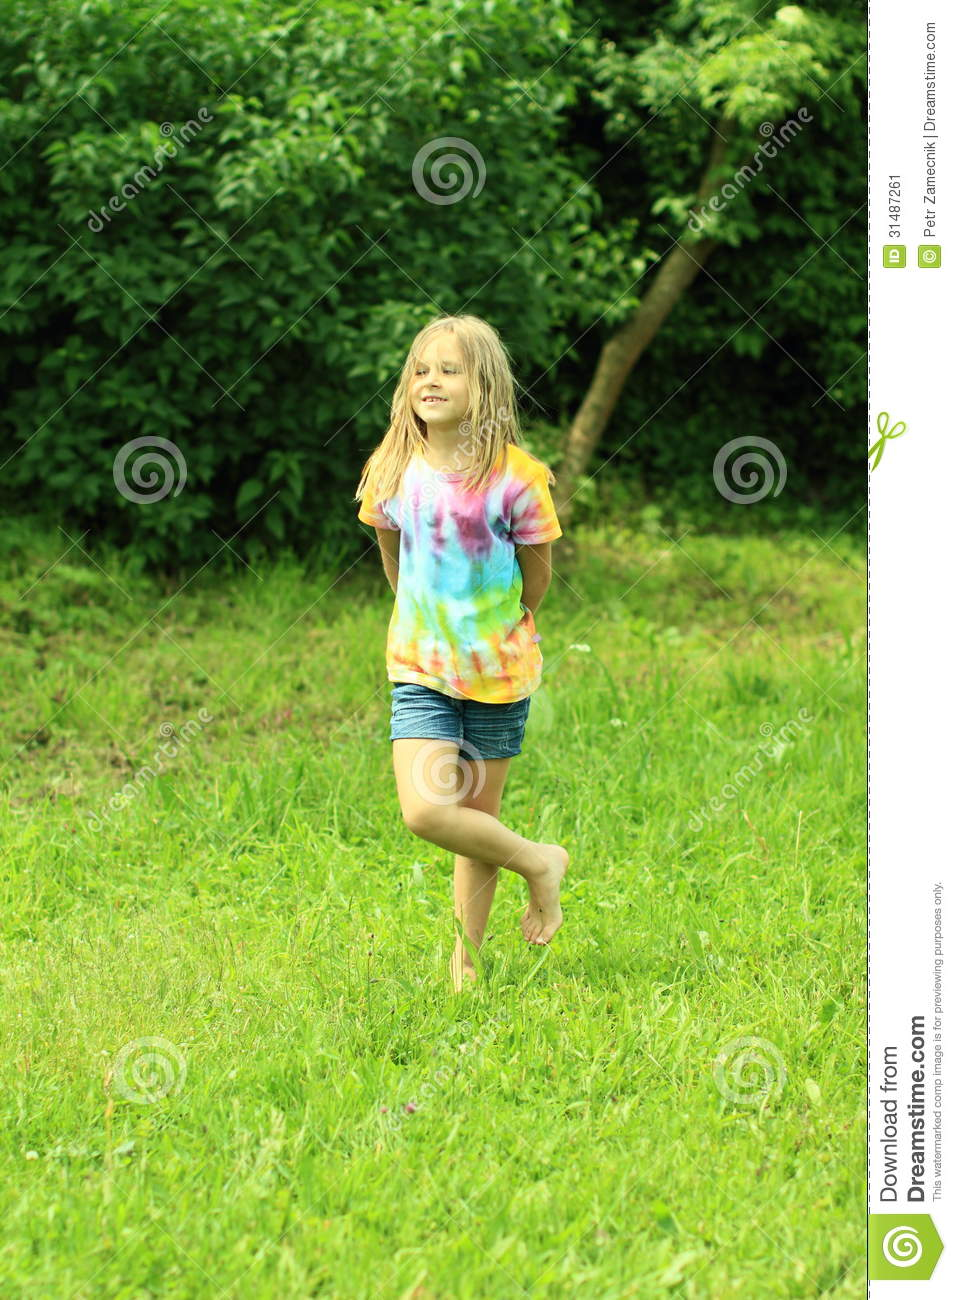 Little Girl Standing Barefooted On Grass Stock Image